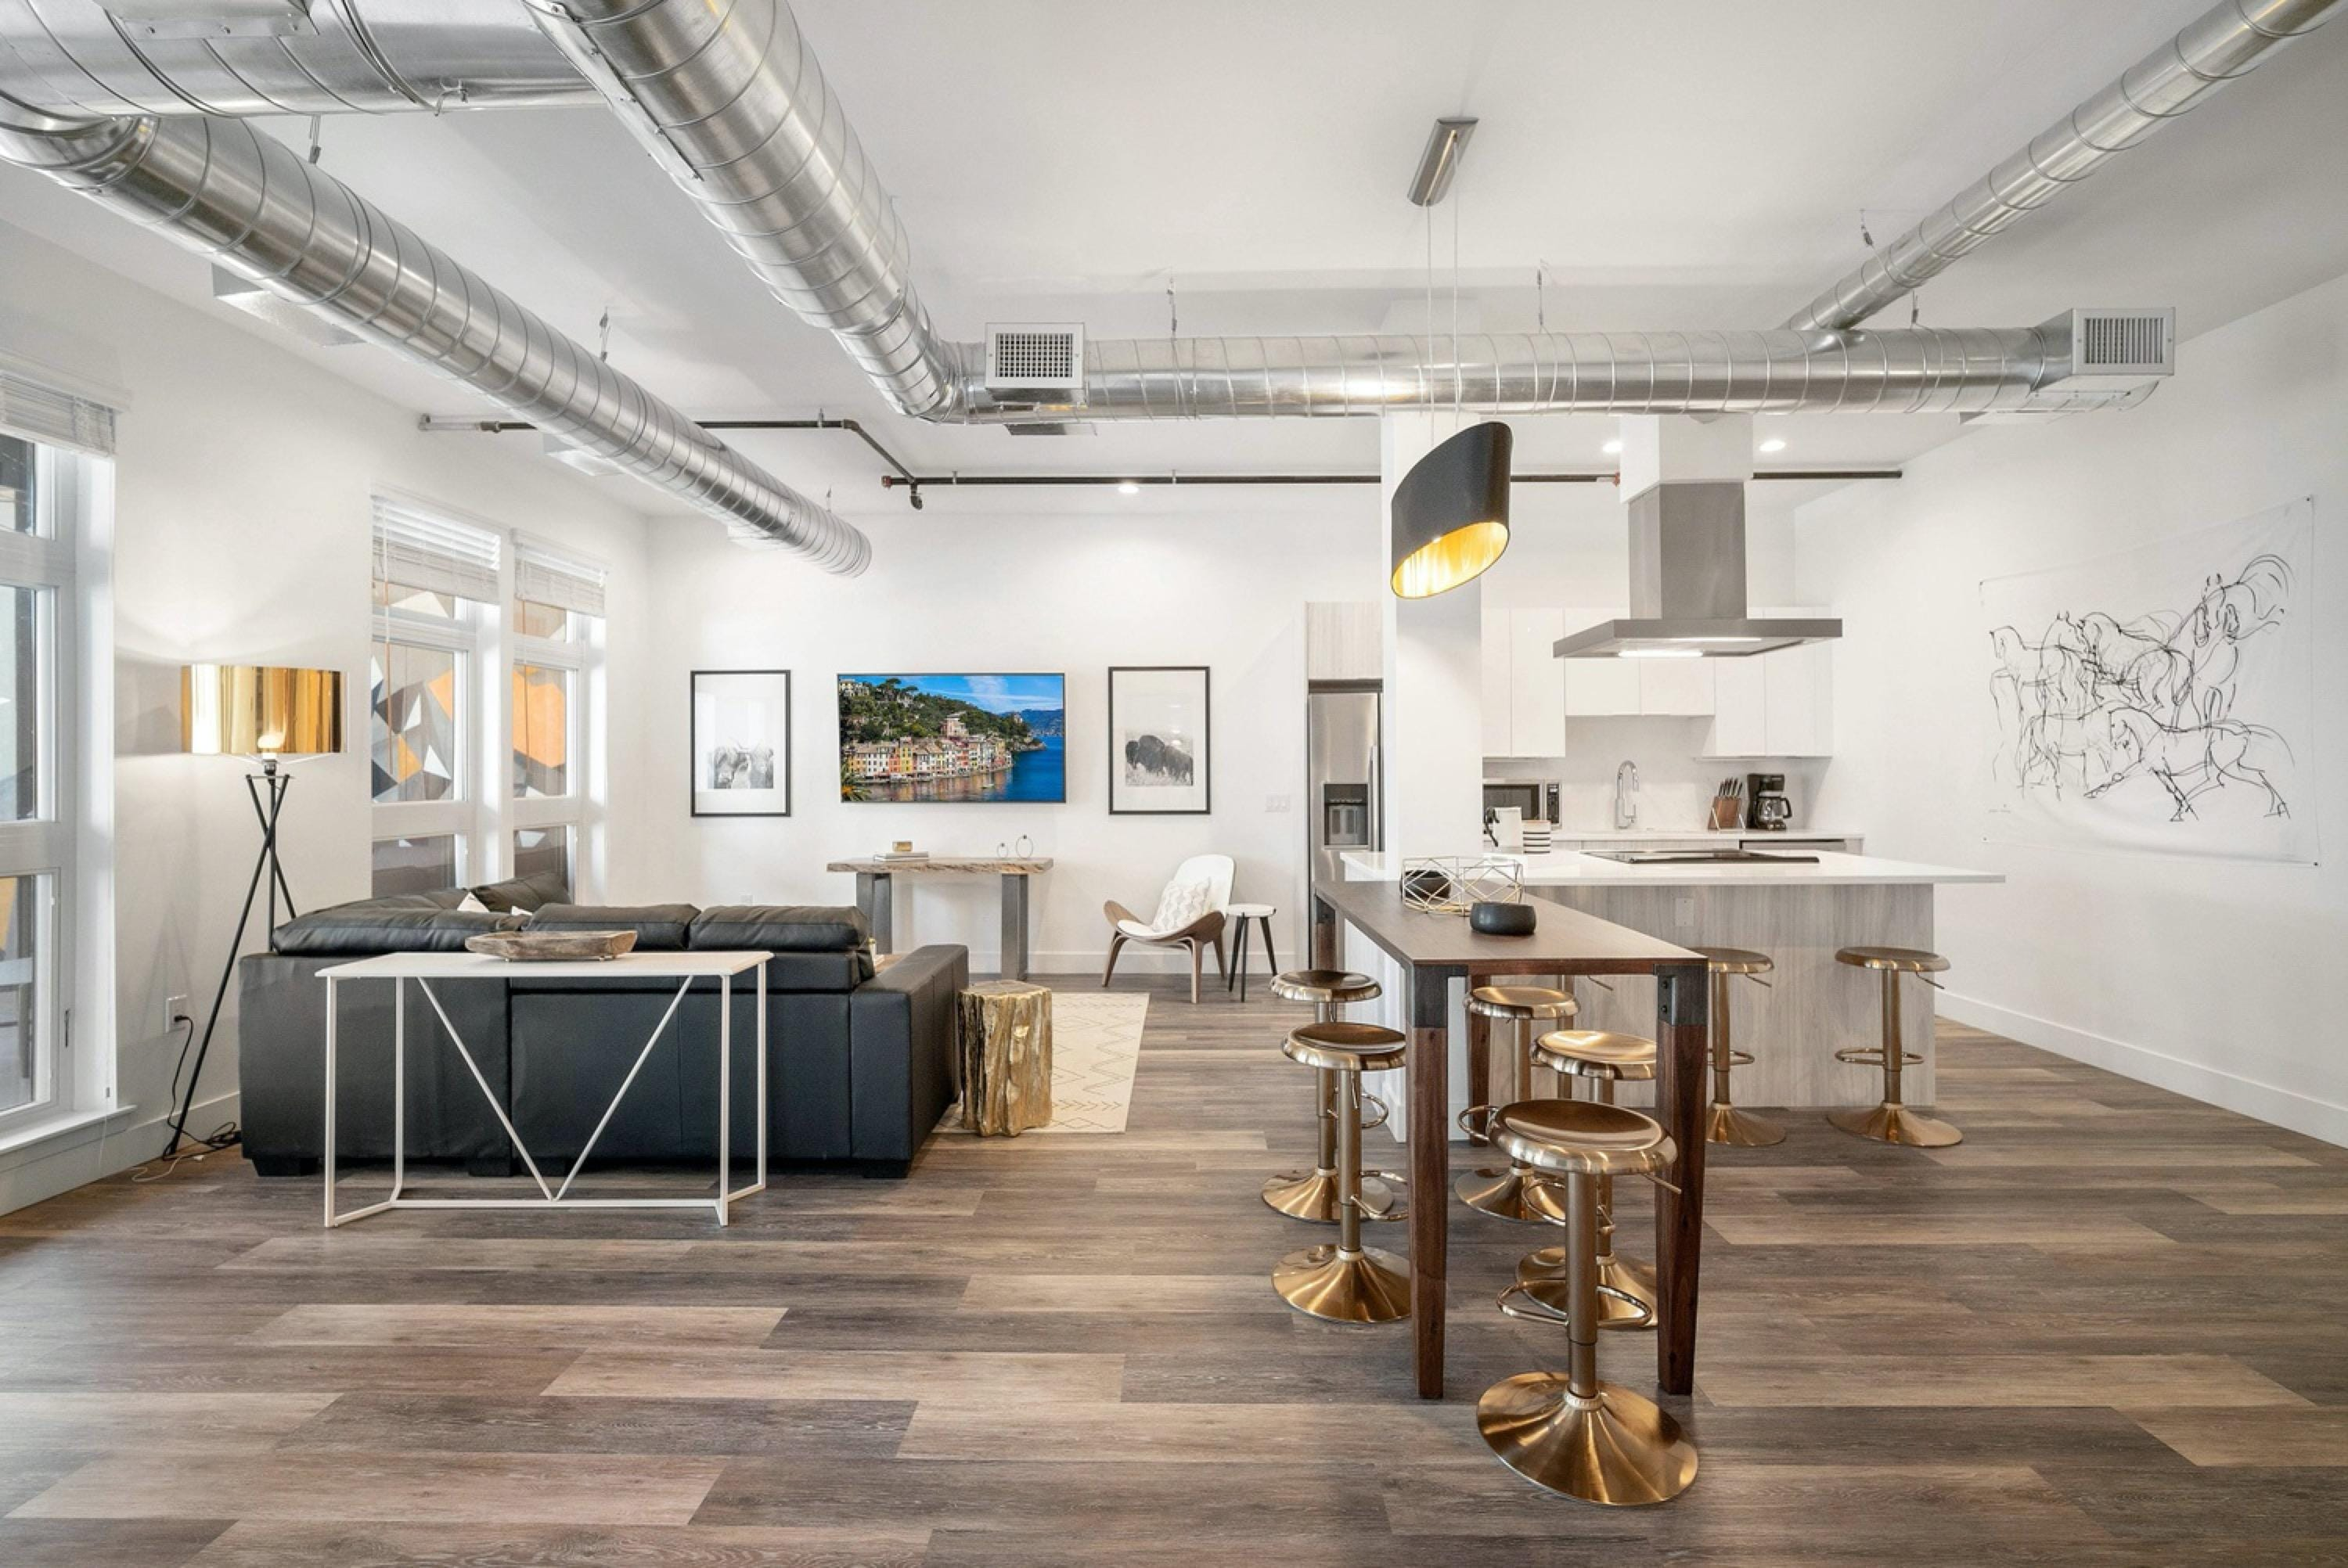 Property Image 1 - Urban Loft with Skyline Views in RiNo Art District